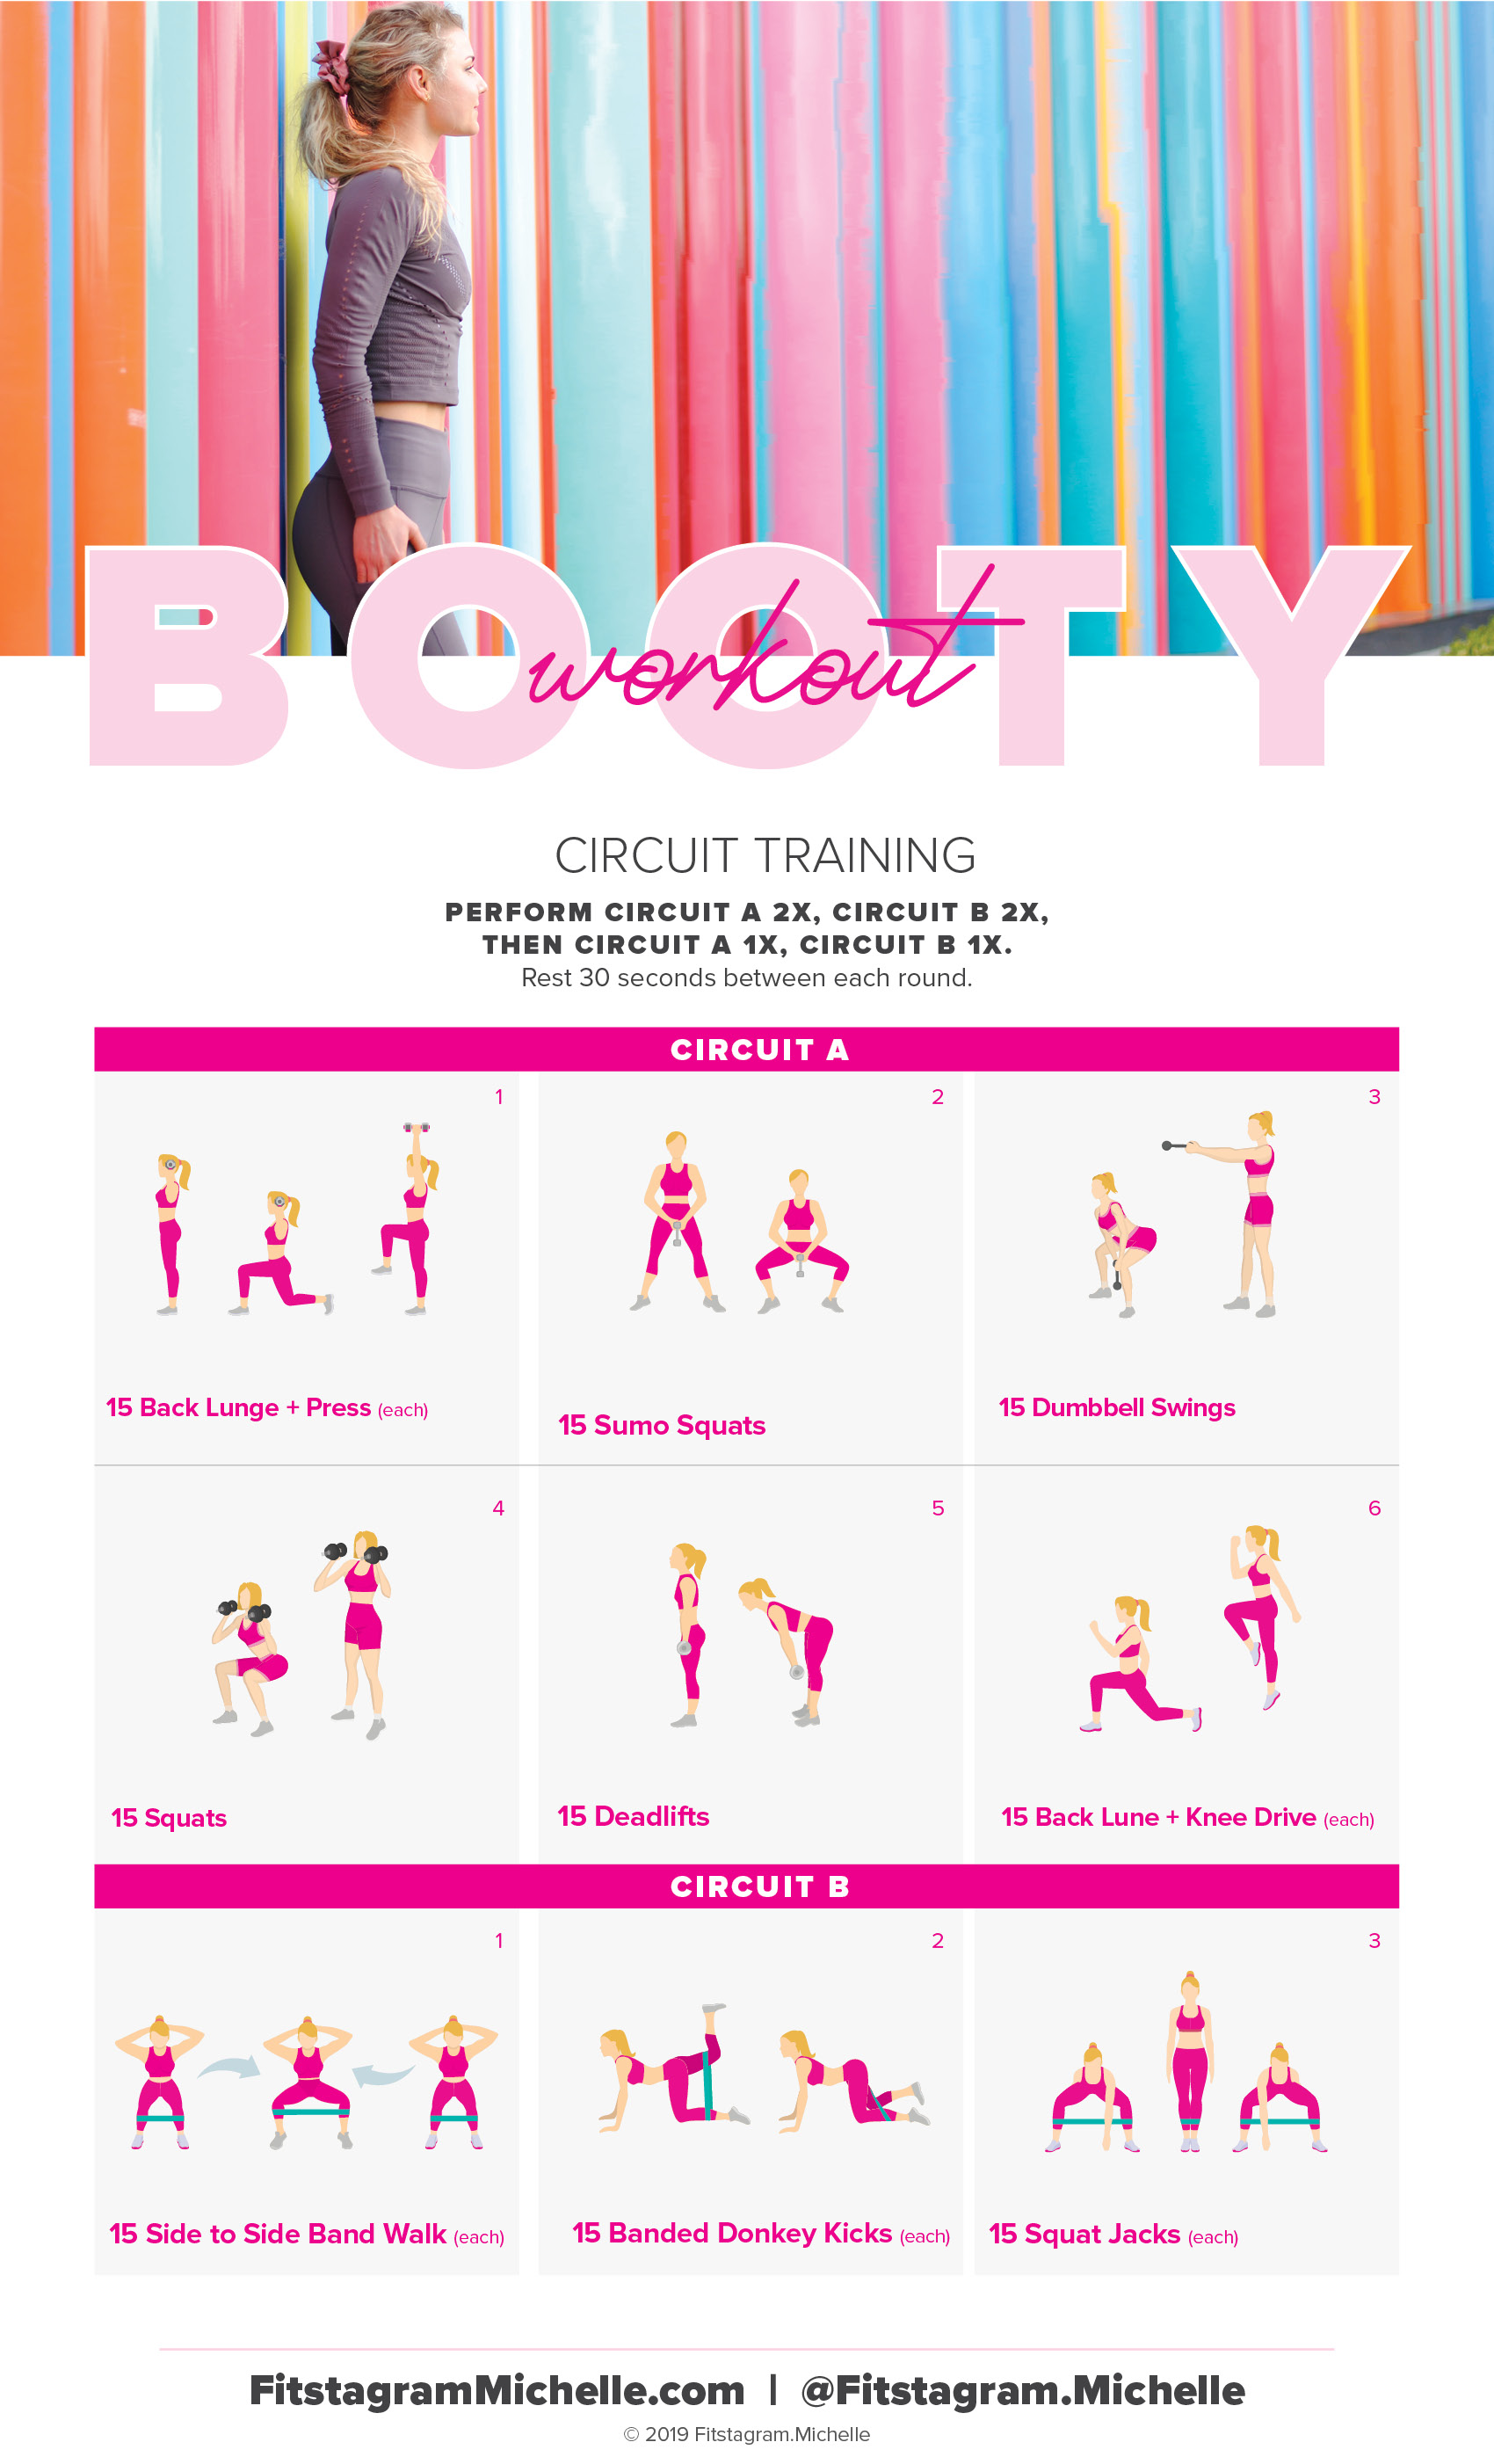 Try this circuit workout to tone your booty and get it to pop. This Toned butt workout you can perform at home with a single set of dumbbells. Grow your butt, and tone it up.